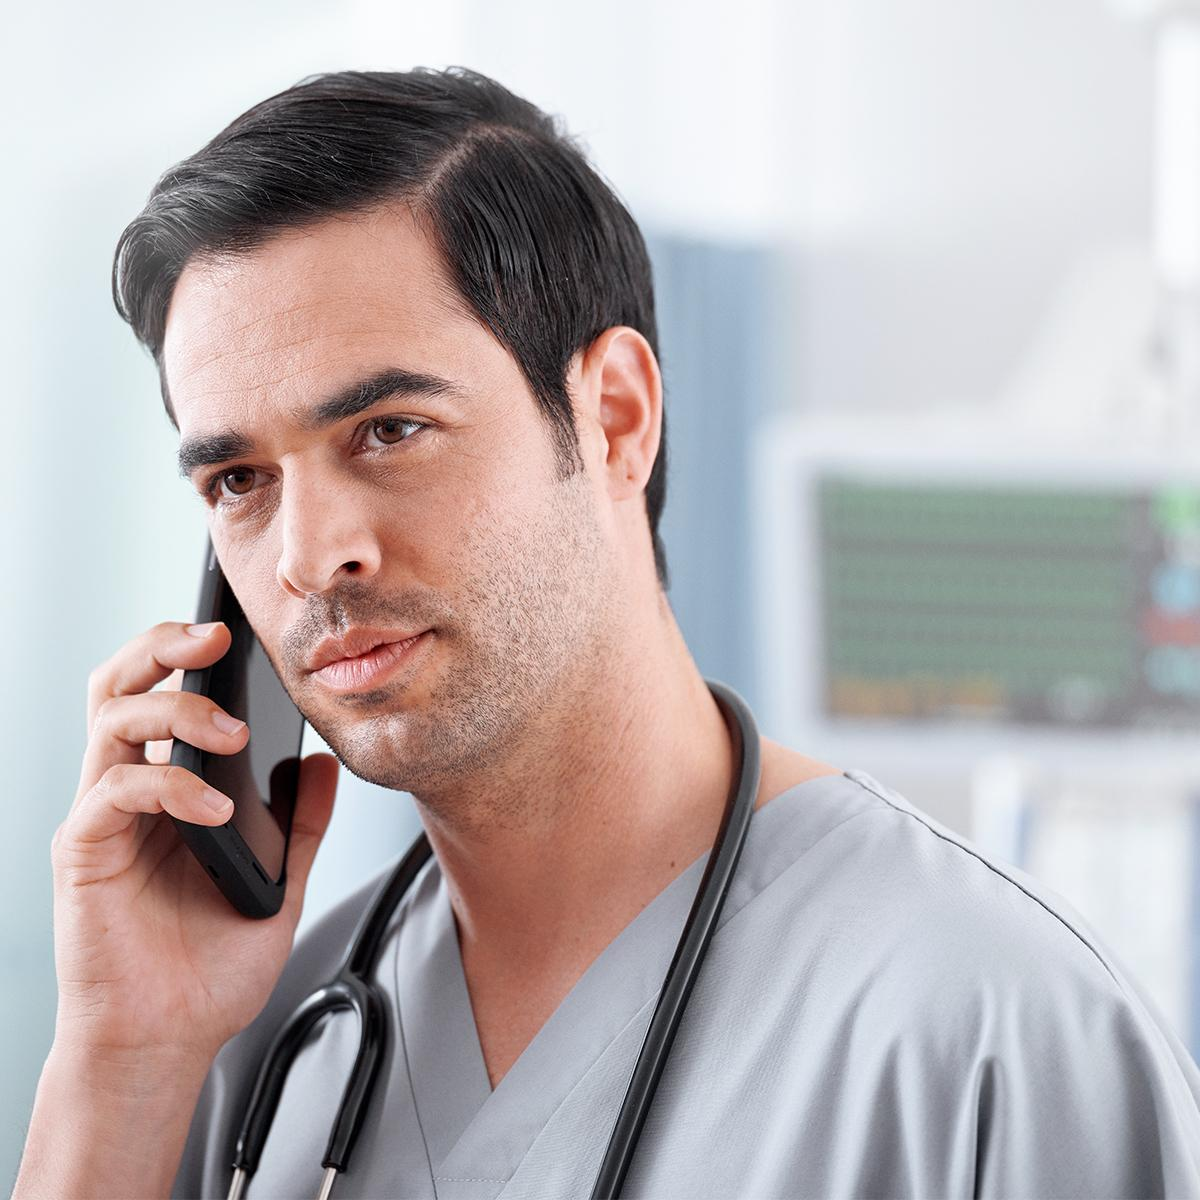 Nurse holding a smartphone to his ear